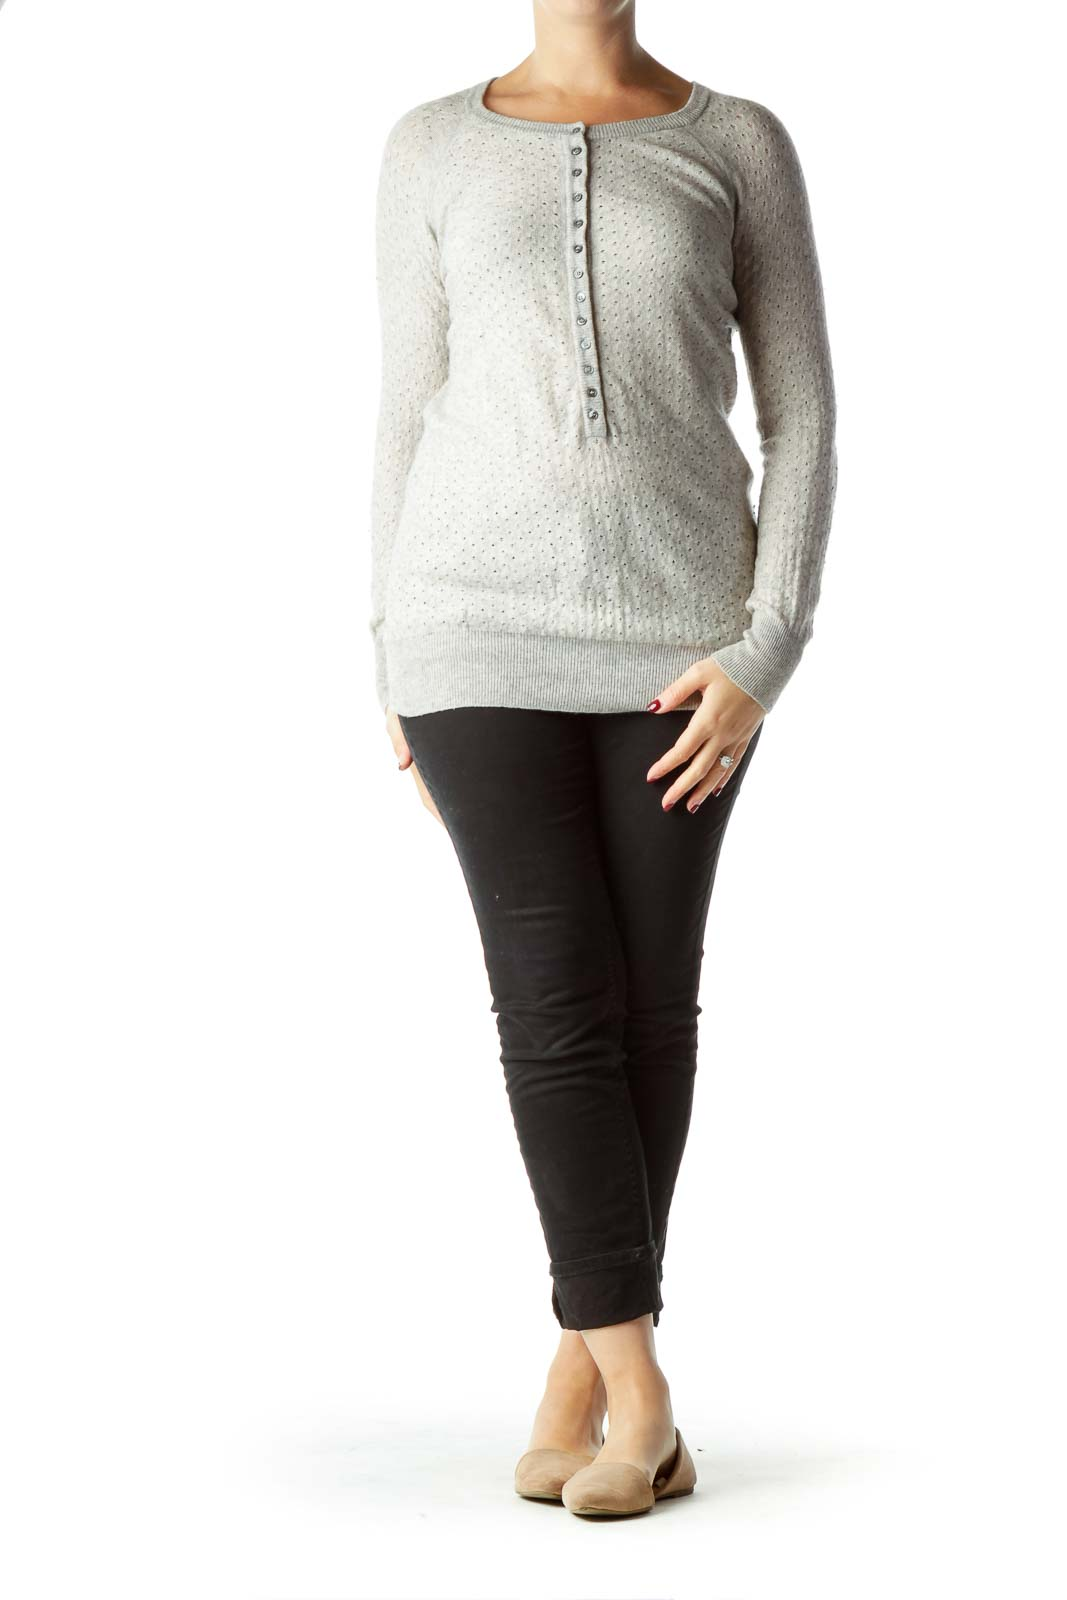 Gray Merino and Cashmere Knit Top with Buttons